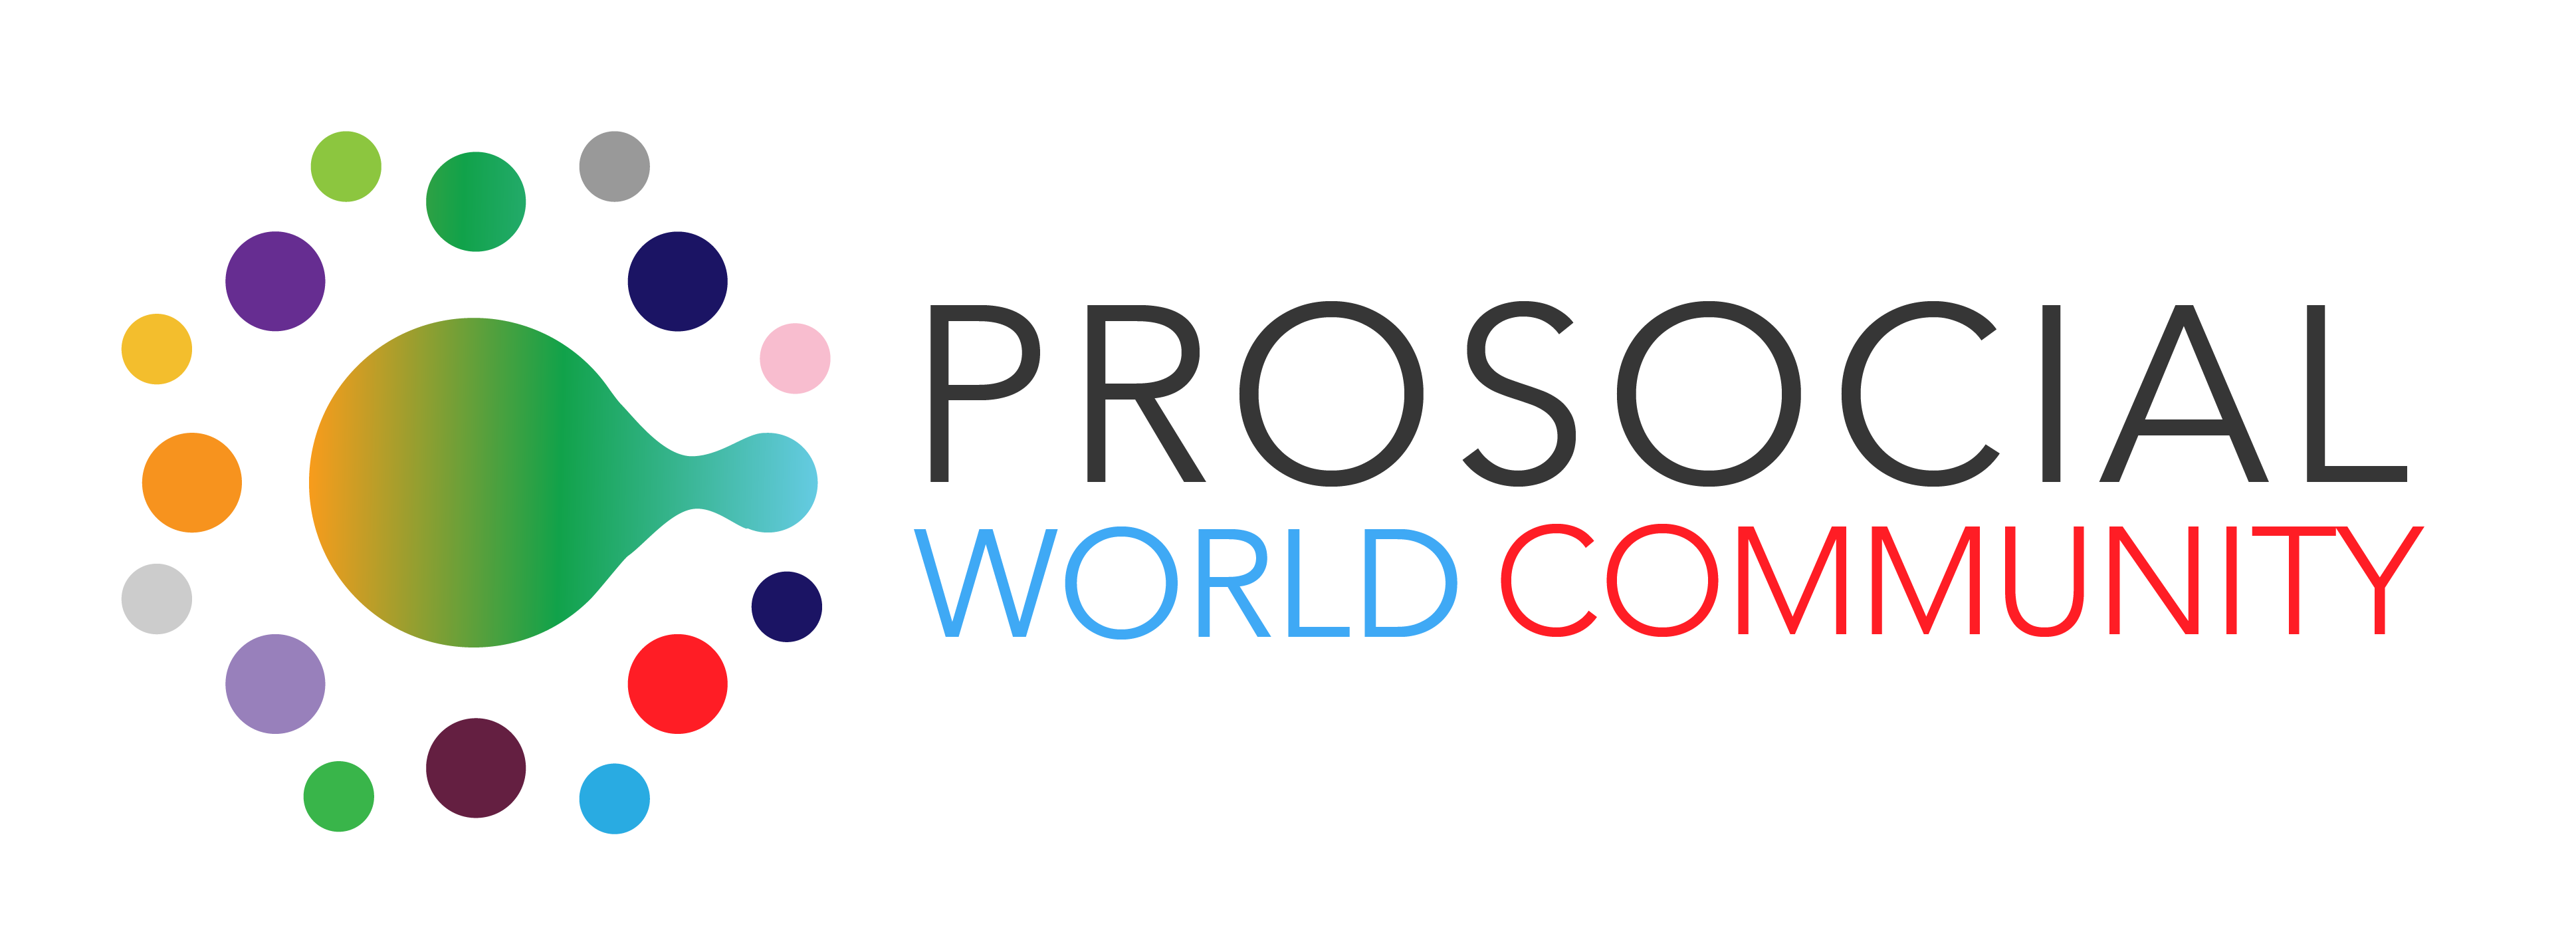 Prosocial World Community Logo